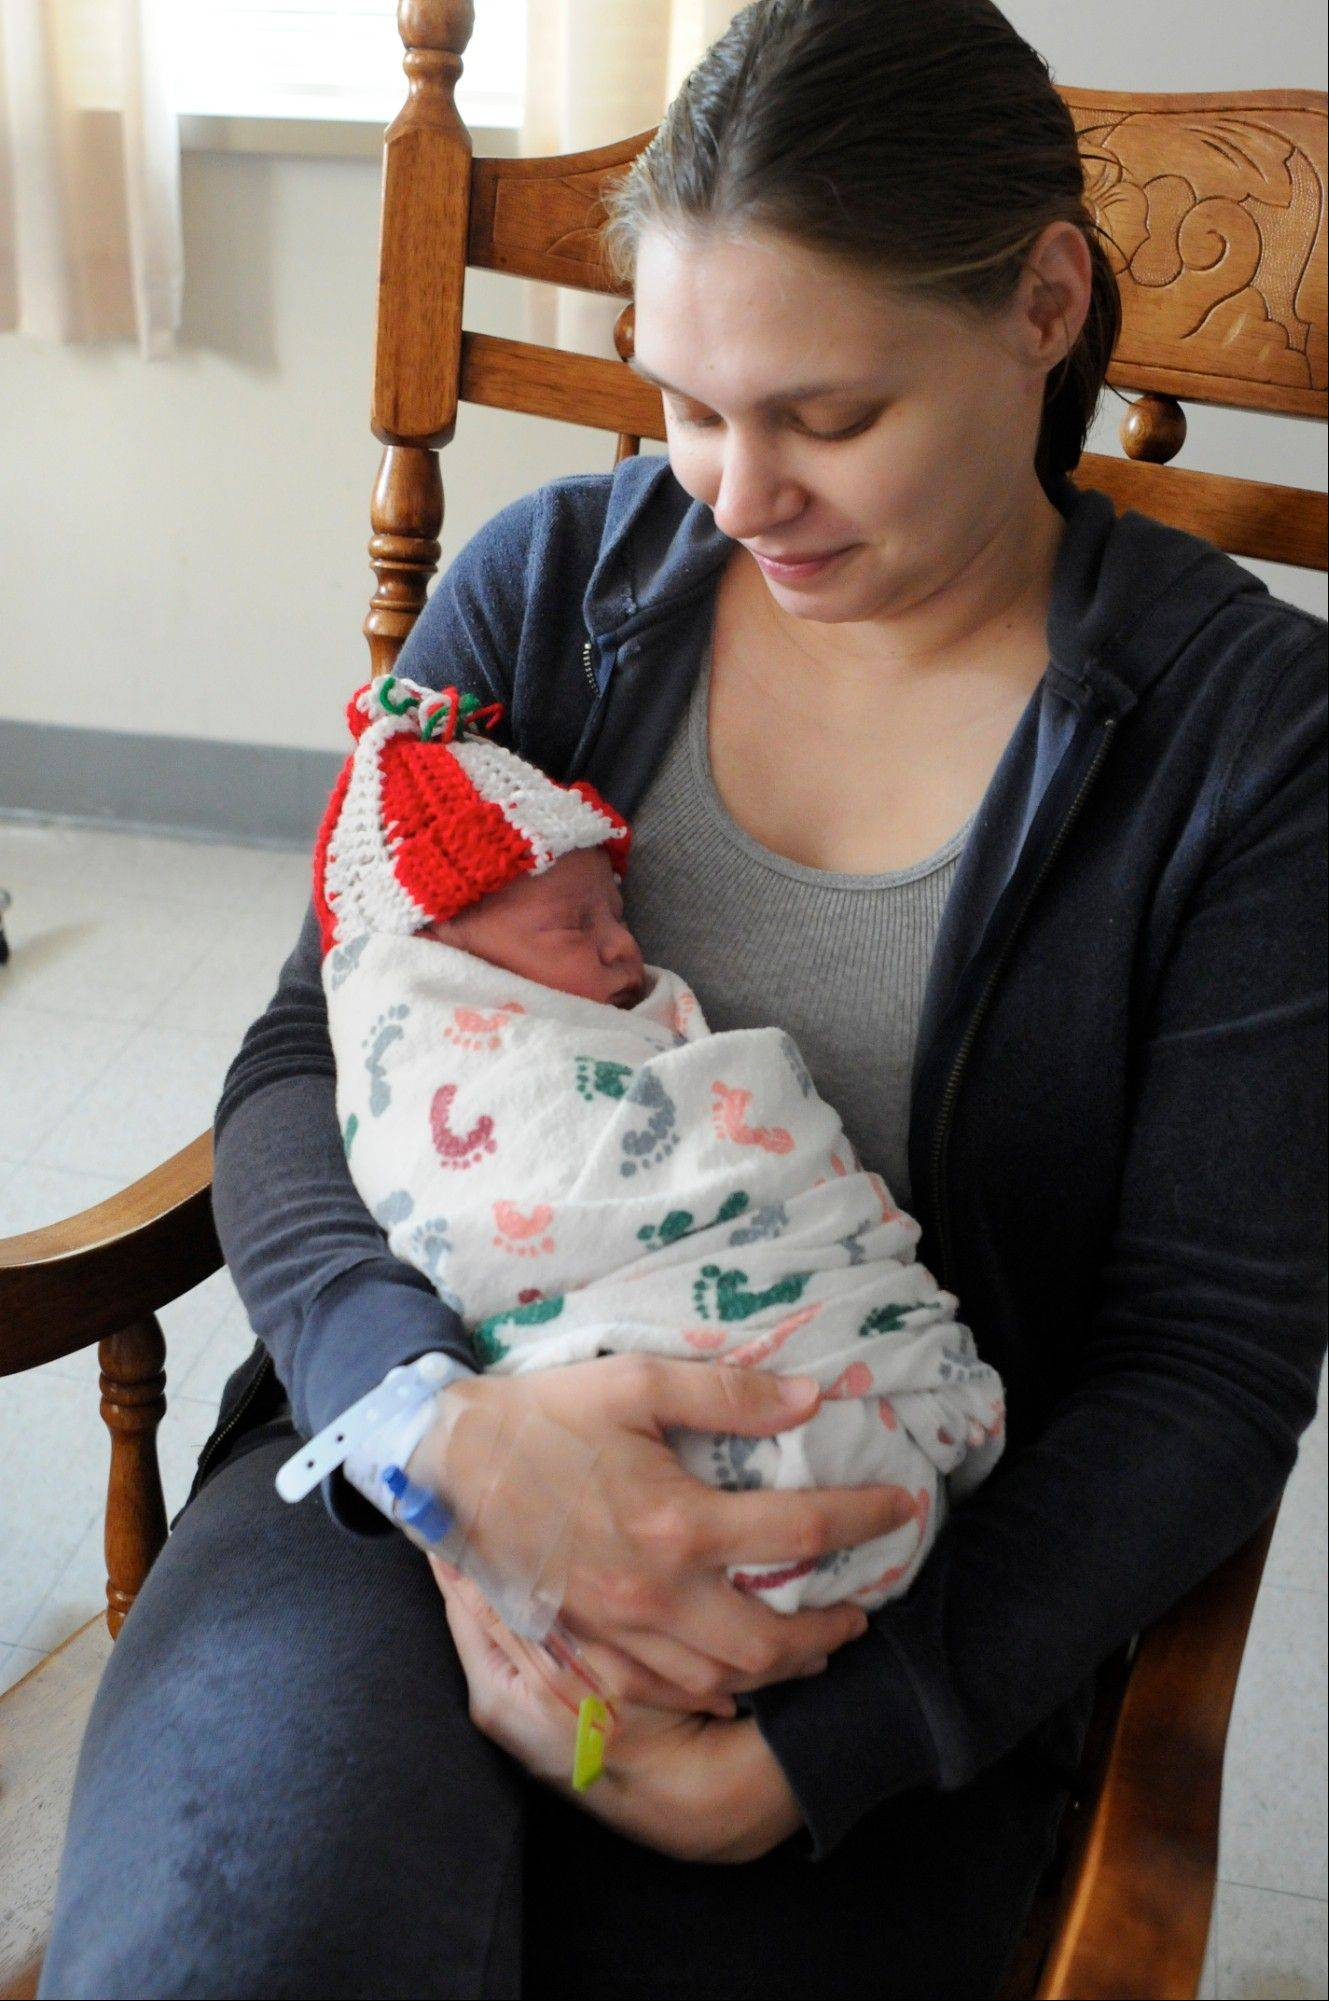 Rachel Krise, Pottsville, Pa., with her newborn son, Jet Ryan, who was born at 12:12 p.m. on Wednesday at The Birthplace Schuylkill Medical Center South Jackson Street in Pottsville, Pa. Rachel's fiance, Adam Jamison of Pottsville, is the father.